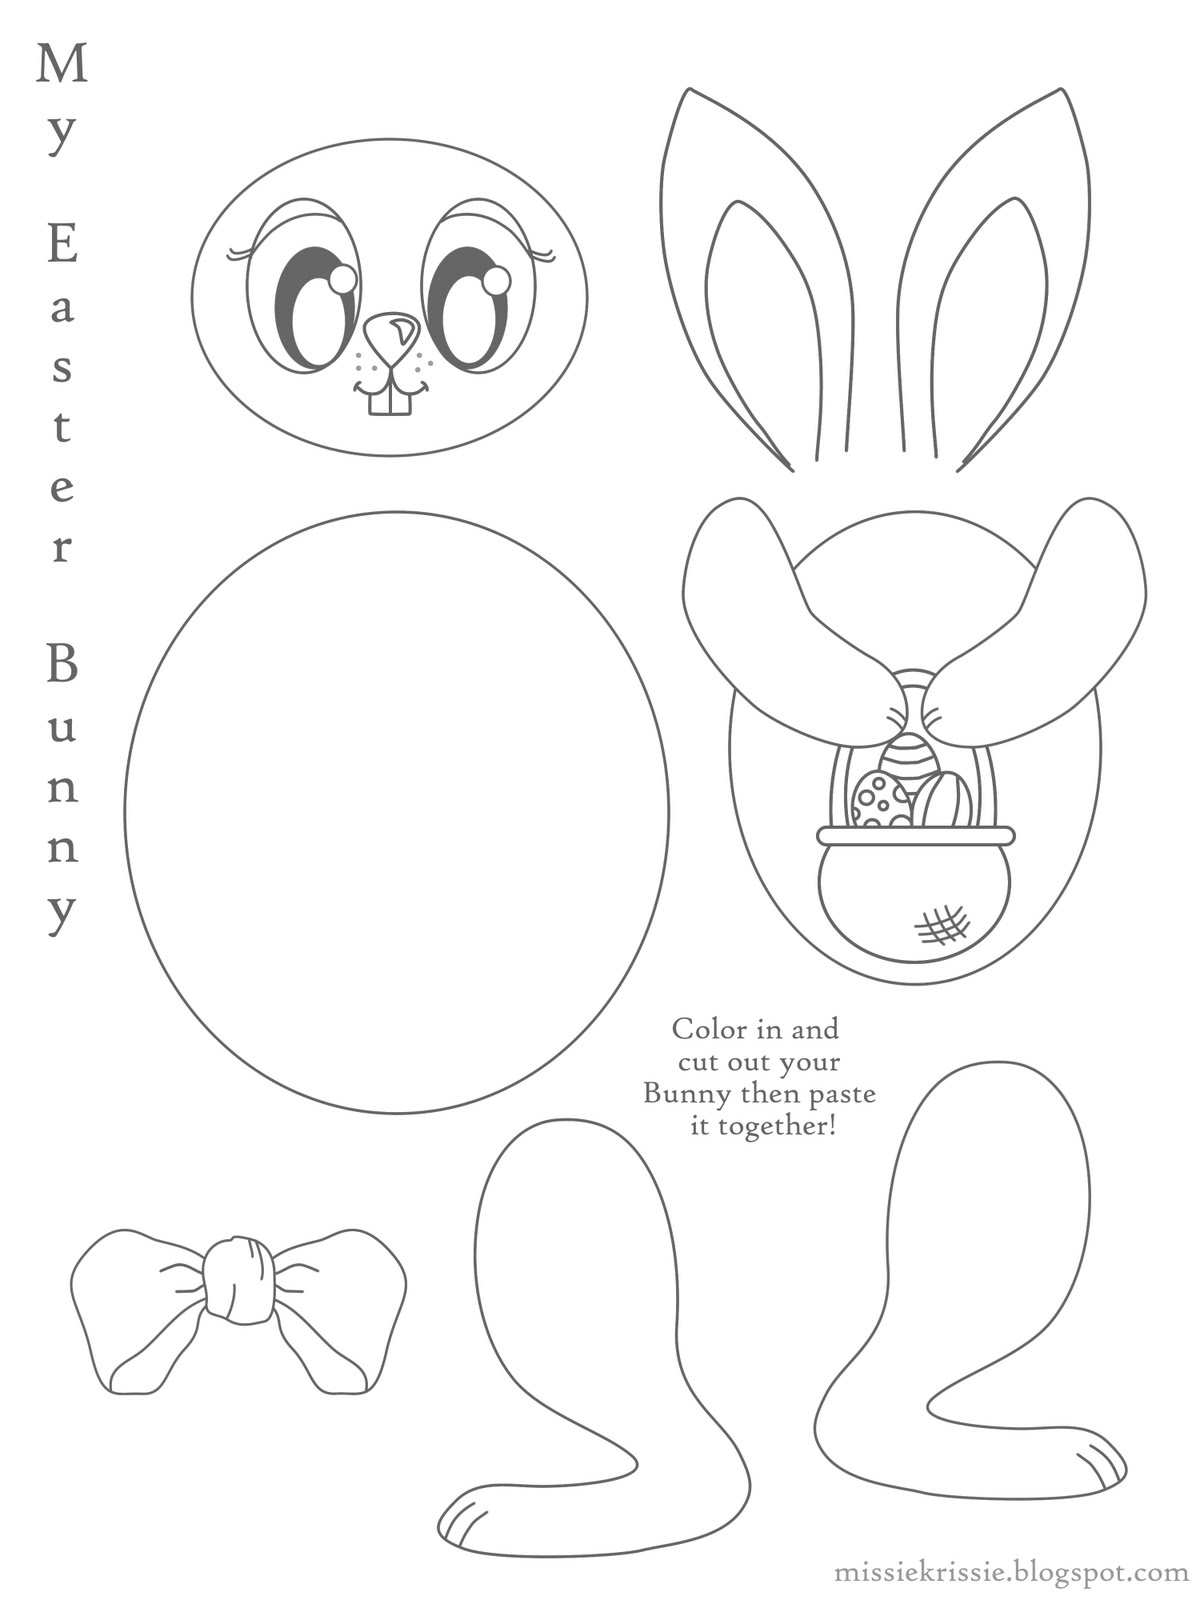 Easter Bunny Cut And Paste Sheet Image